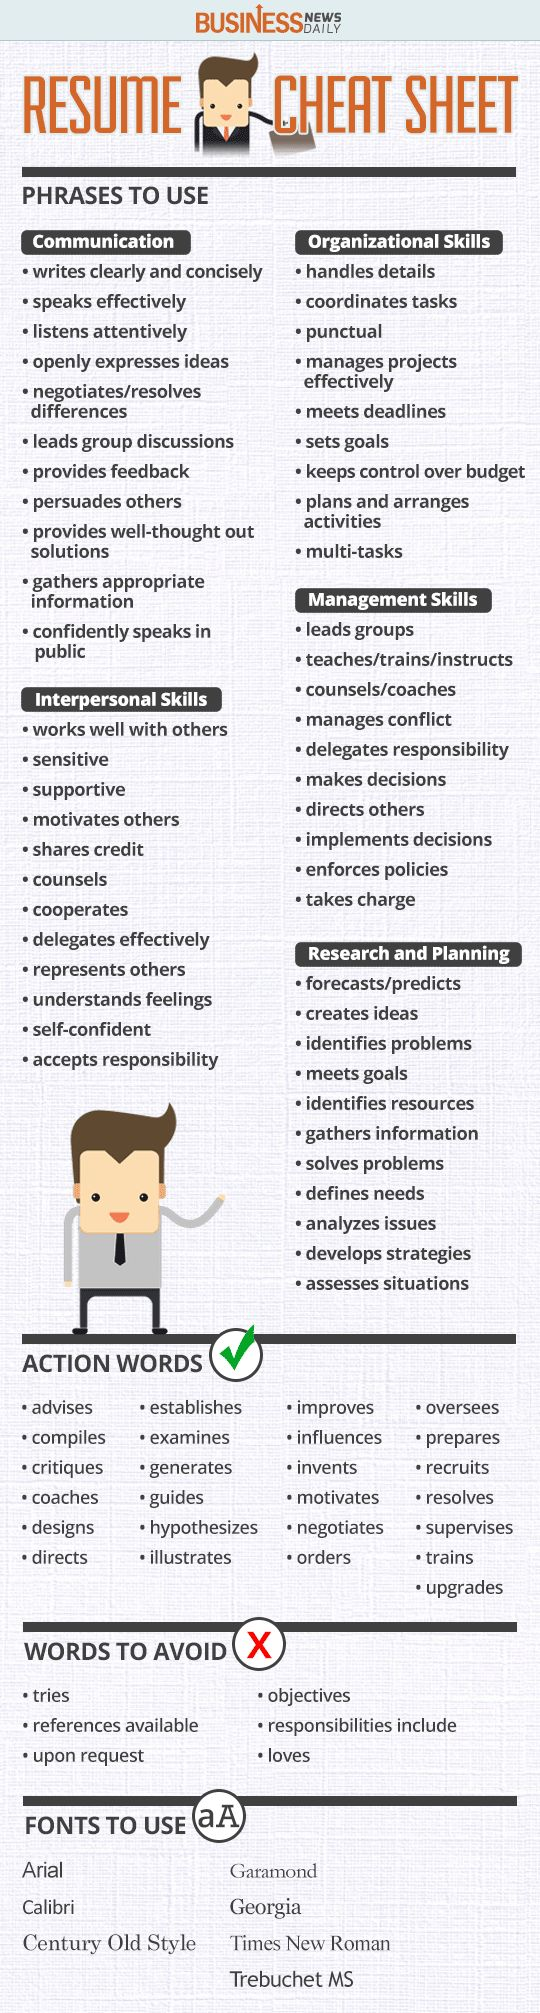 Opposenewapstandardsus  Winsome  Ideas About Resume On Pinterest  Cv Format Resume Cv And  With Outstanding Resume Cheat Sheet Infographic Andrews Almost Done With A Complete Unit On Employment Which With Cool Resume Portfolio Holder Also Two Page Resume Sample In Addition Audit Resume And Resume French As Well As Tips For Resume Writing Additionally College Graduate Resume Examples From Pinterestcom With Opposenewapstandardsus  Outstanding  Ideas About Resume On Pinterest  Cv Format Resume Cv And  With Cool Resume Cheat Sheet Infographic Andrews Almost Done With A Complete Unit On Employment Which And Winsome Resume Portfolio Holder Also Two Page Resume Sample In Addition Audit Resume From Pinterestcom